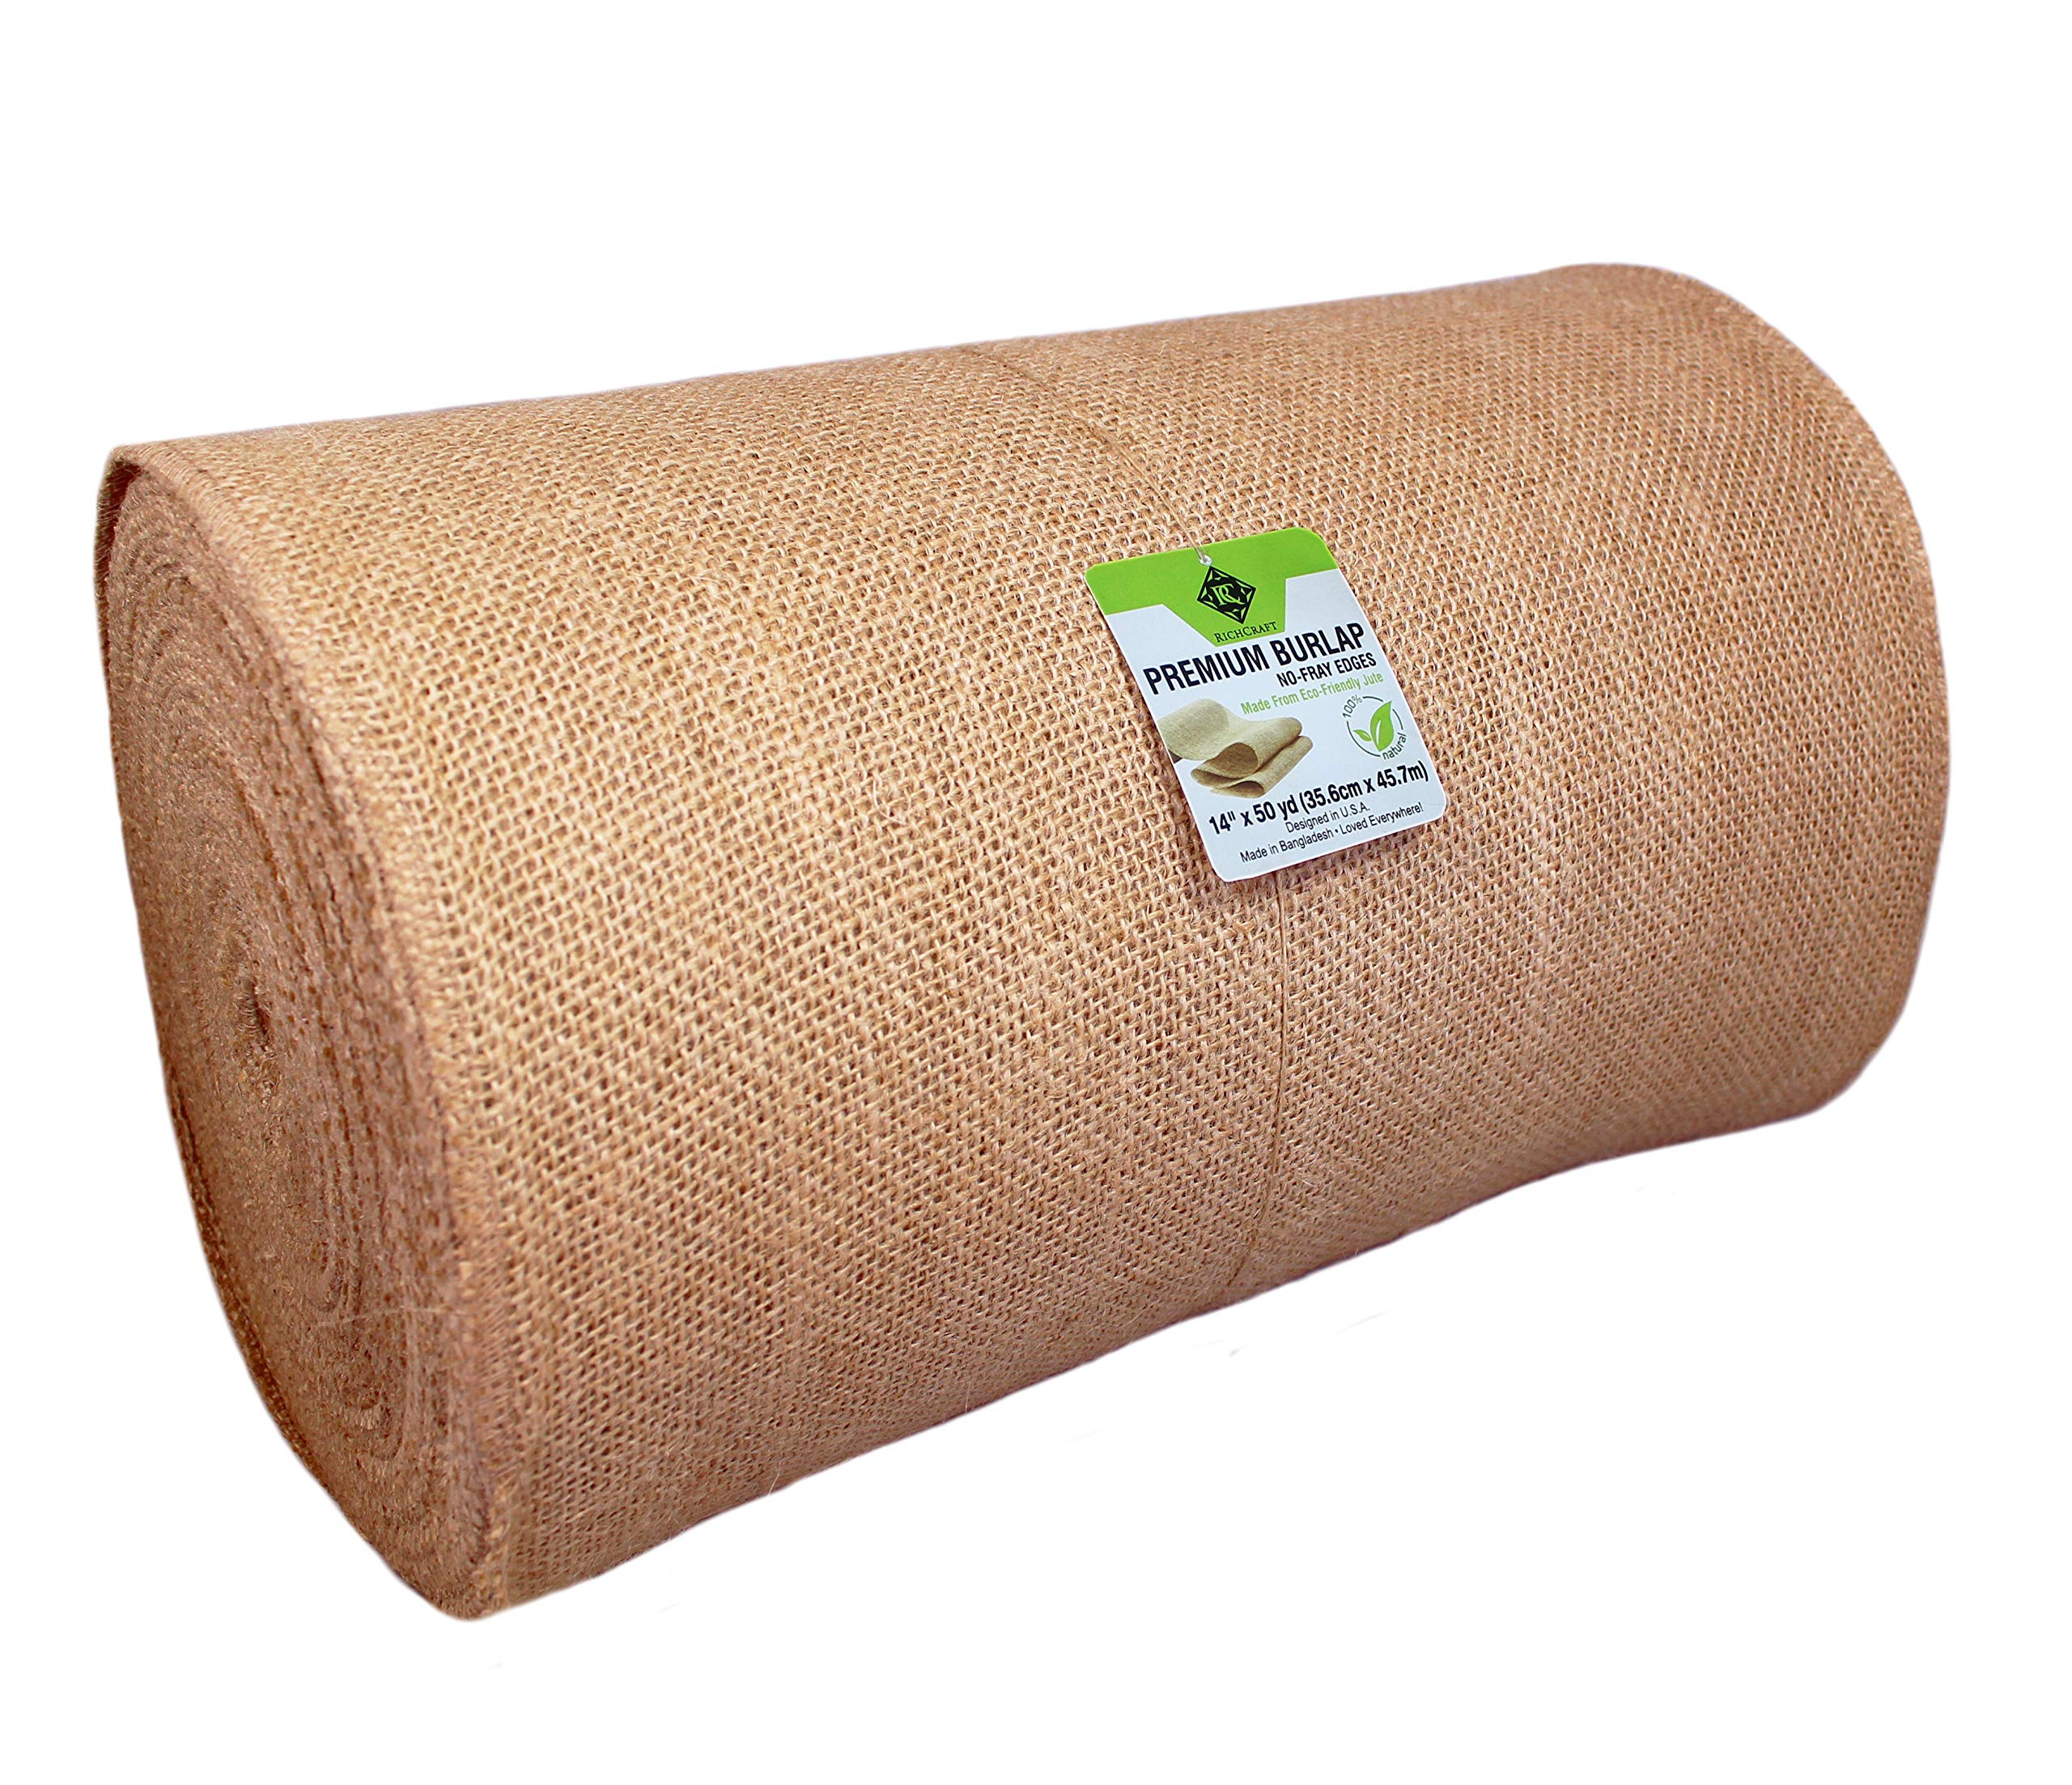 14'' x 50yd NO-FRAY NO-Mess Burlap Table Runner Roll ~ 14'' Wide x 50 Yards Long Table Runner Fabric w/Finished Edges. Perfect for Weddings, Placemat, Crafts. Decorate Without The Mess! by RC RICHCRAFT (Image #4)